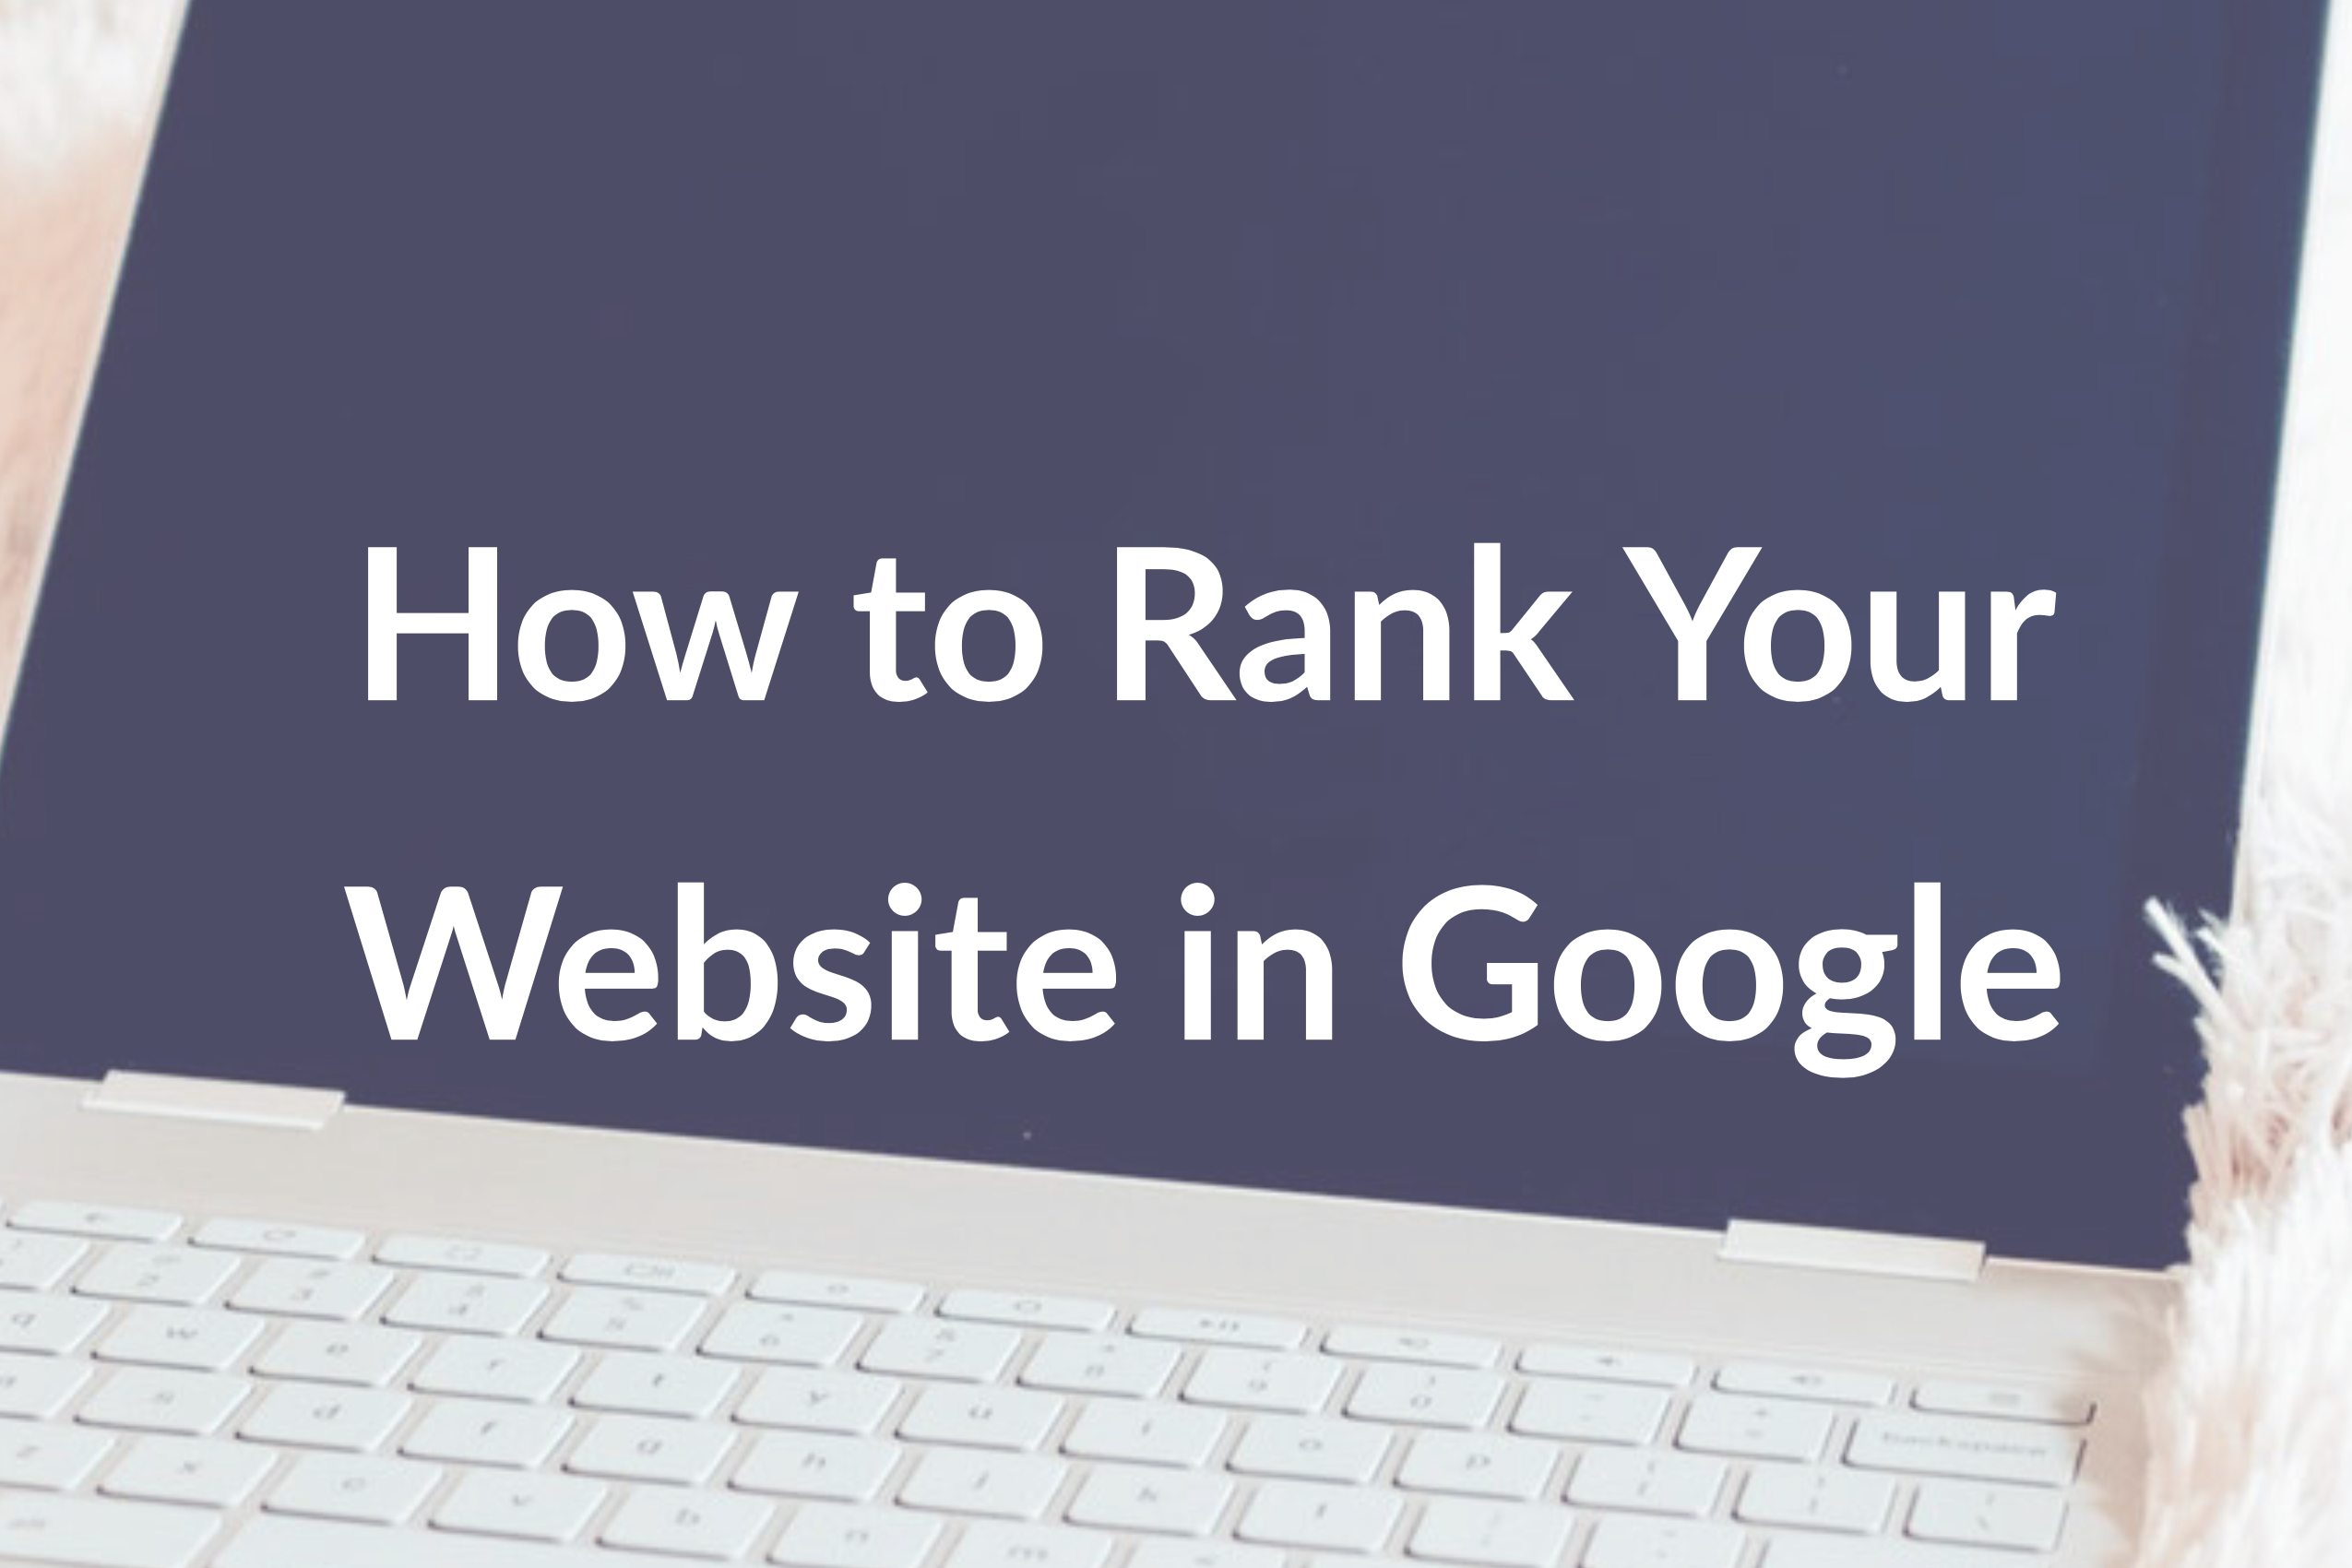 SEO Best Practices 2019: How to Rank Your Website in Google